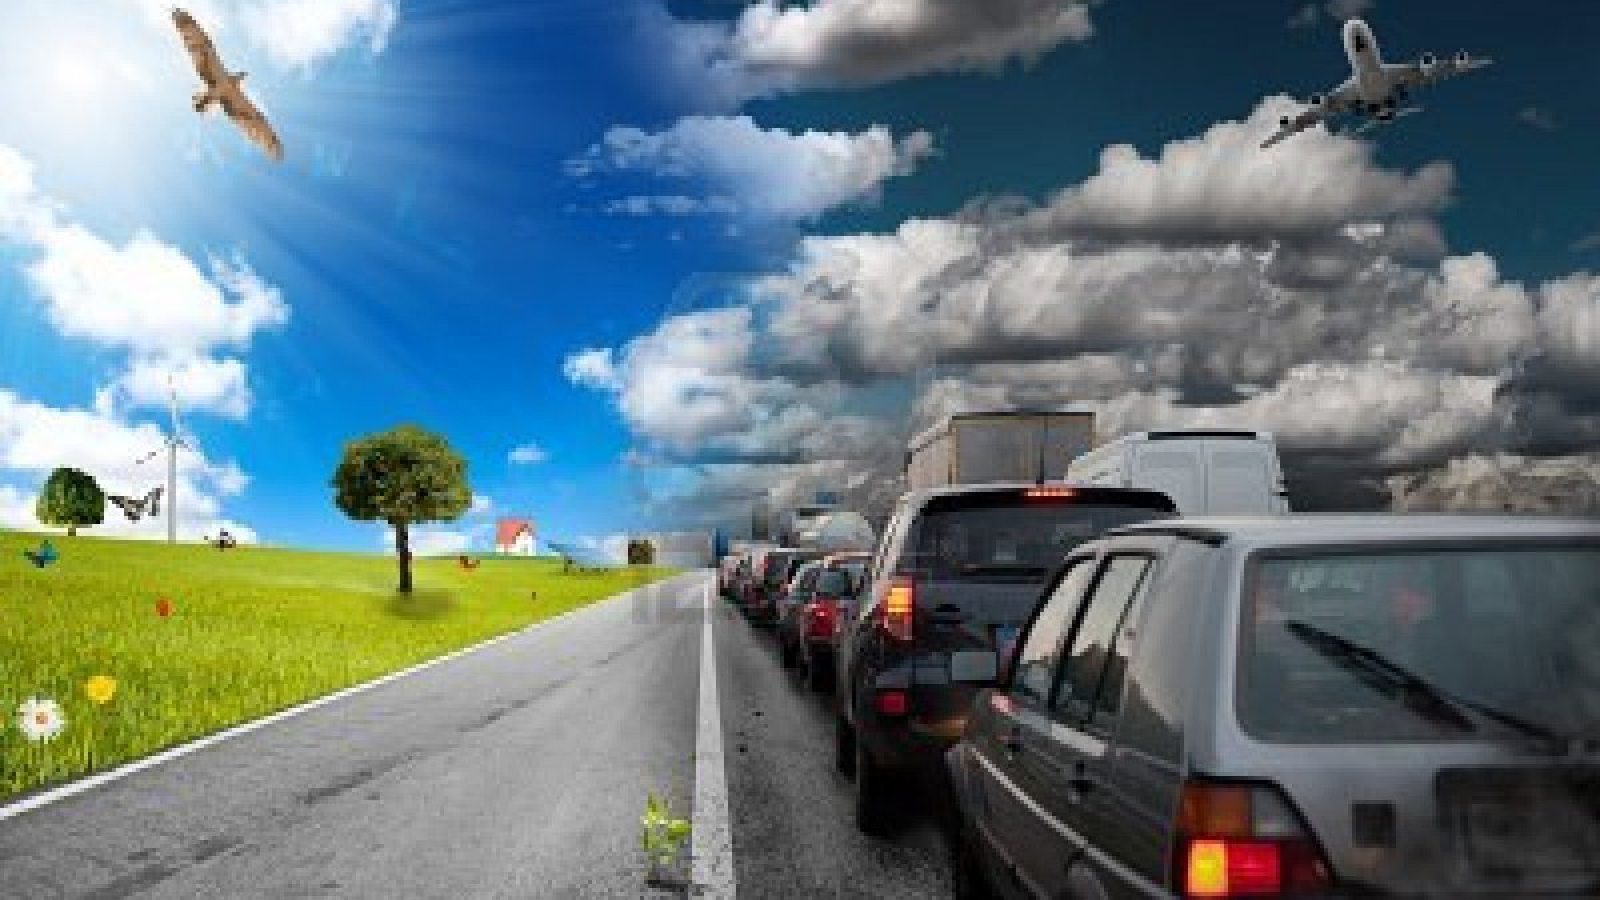 10106510-diffference-between-car-pollution-and-green-environment